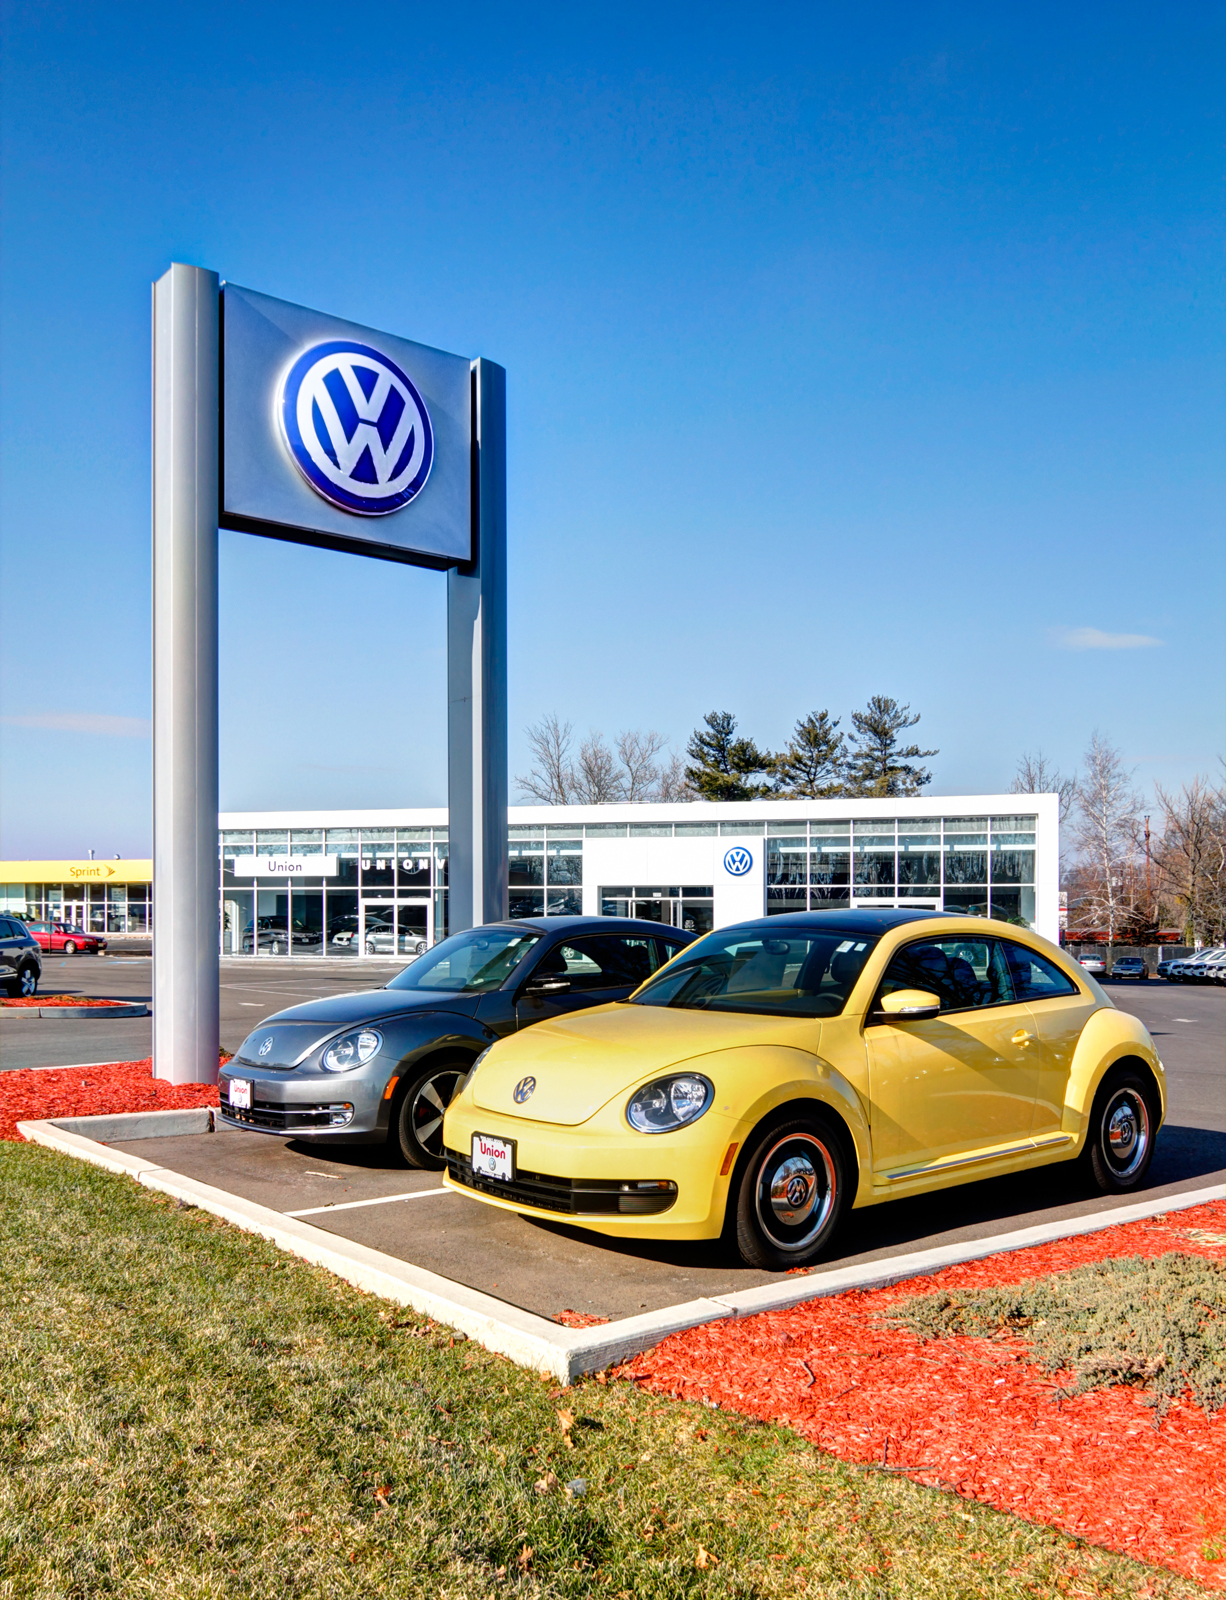 union vw auto dealer union nj insidebusinessnyc com union vw auto dealer union nj insidebusinessnyc com